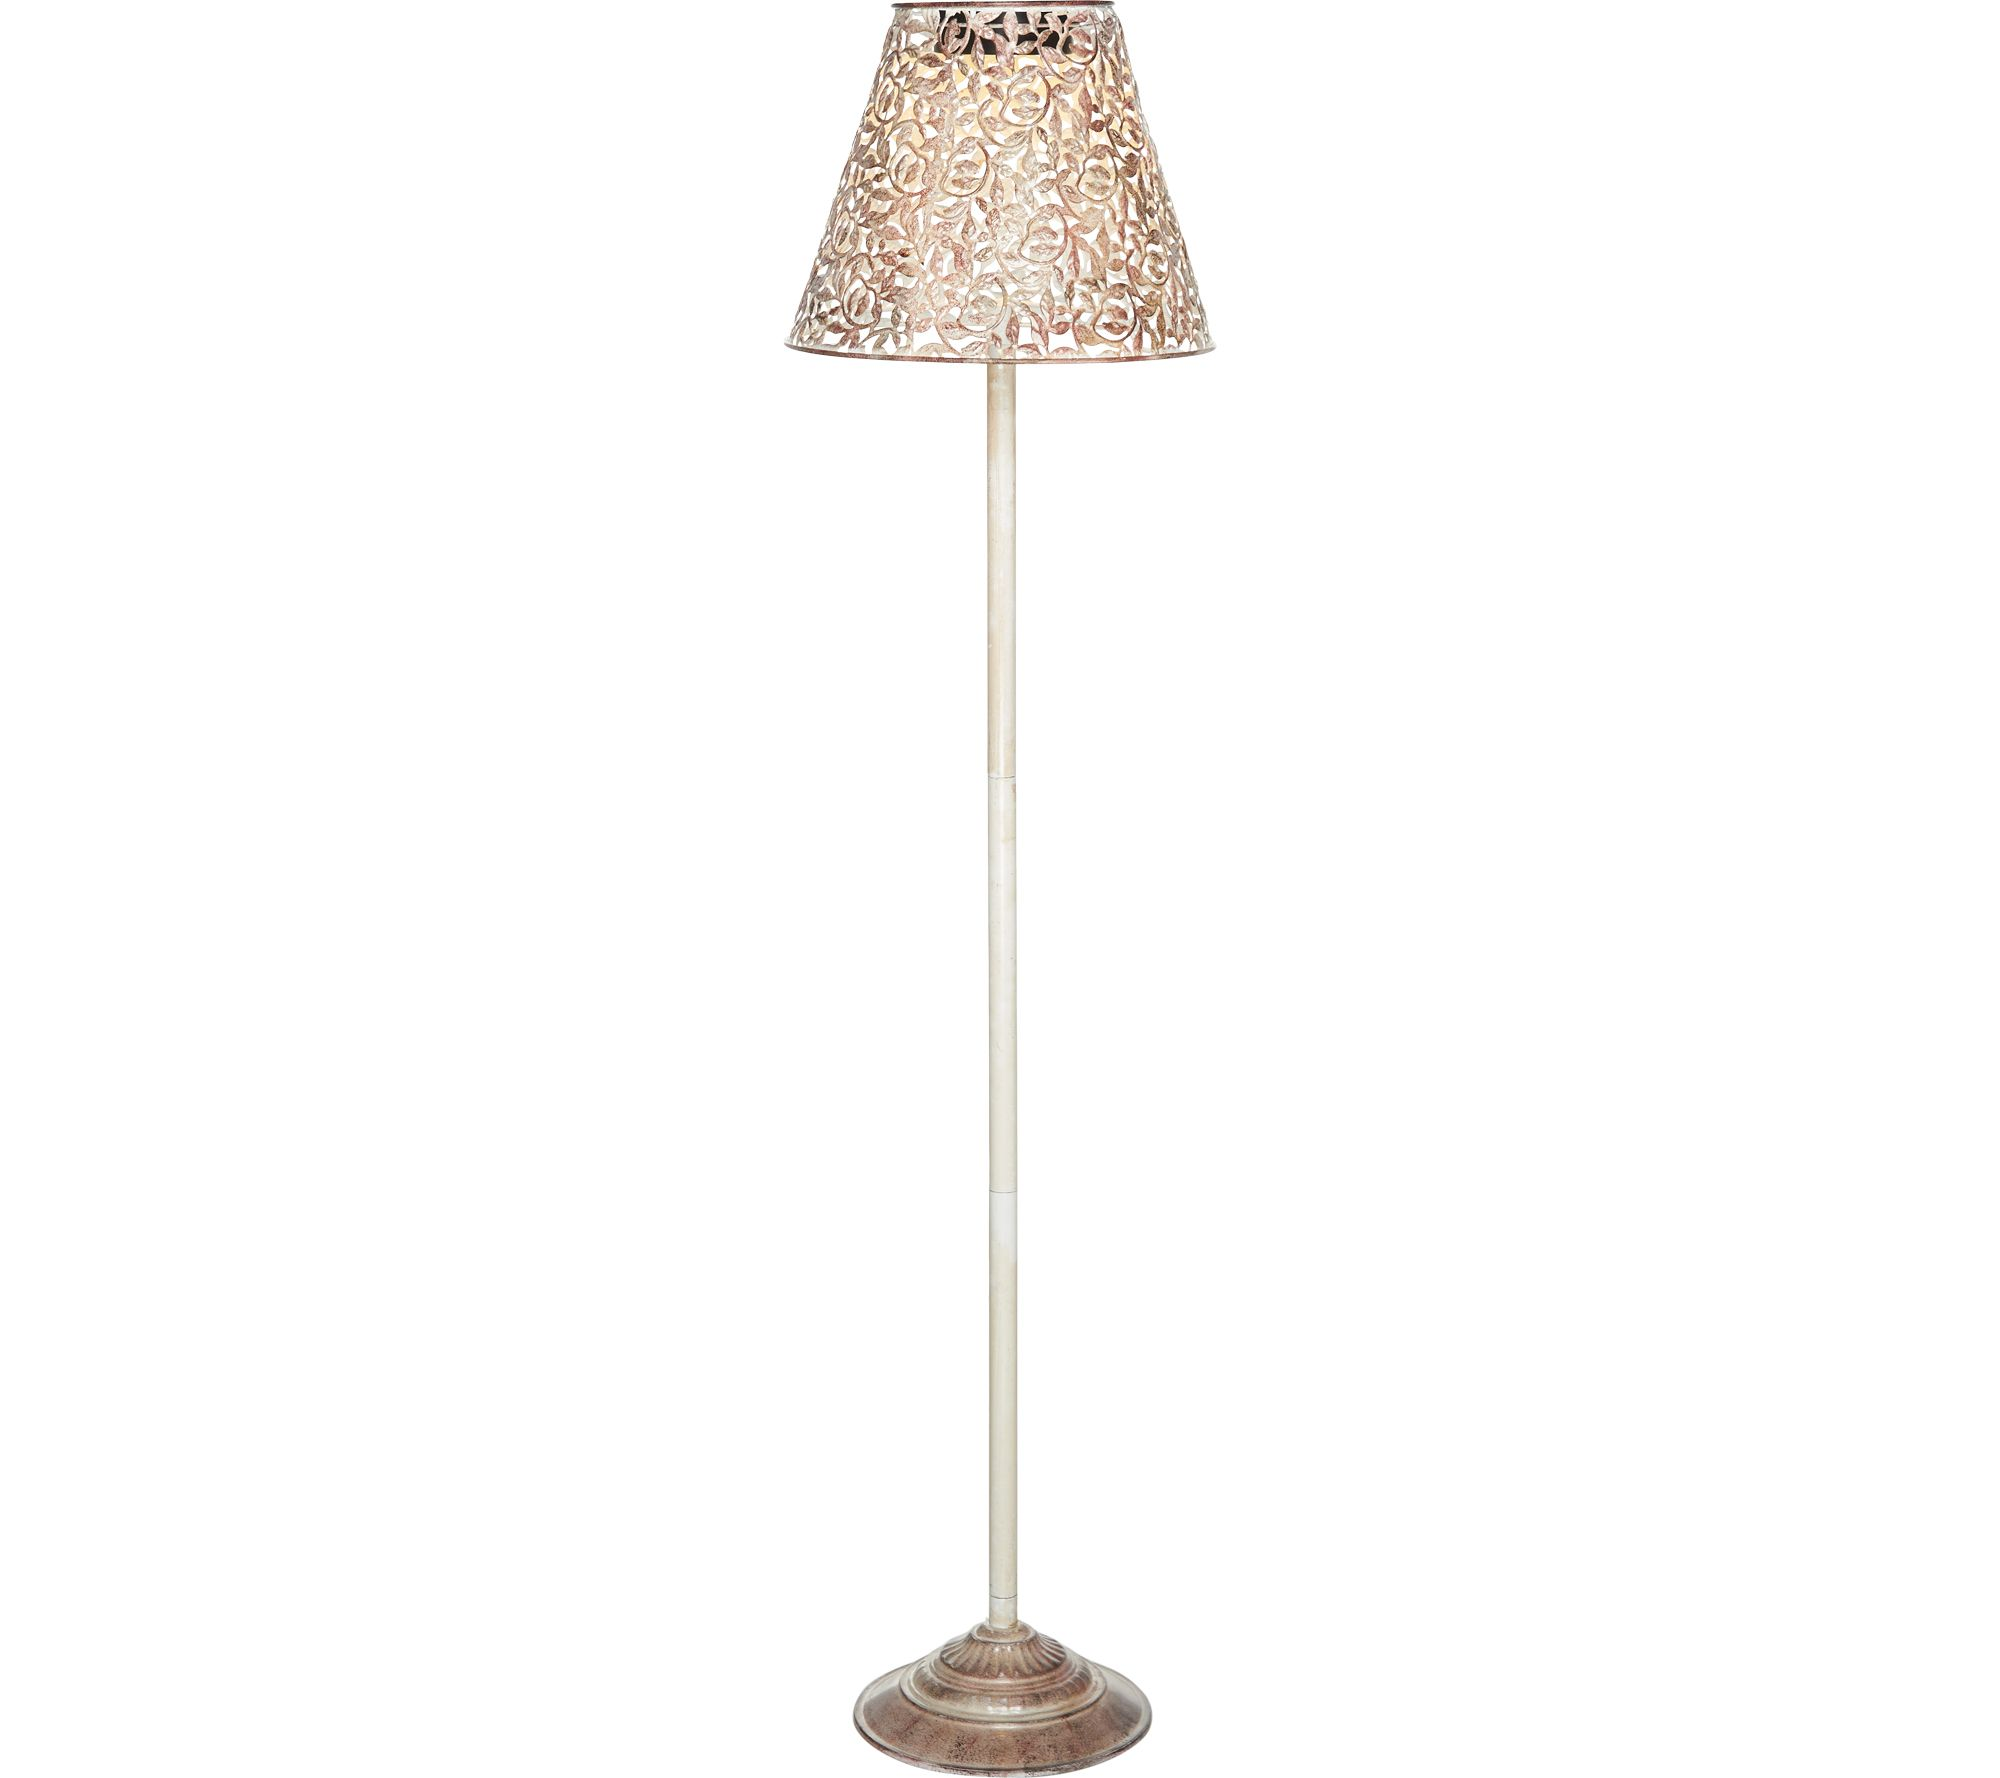 Led solar 2 in 1 filigree outdoor floor lamp by evergreen page 1 qvc com